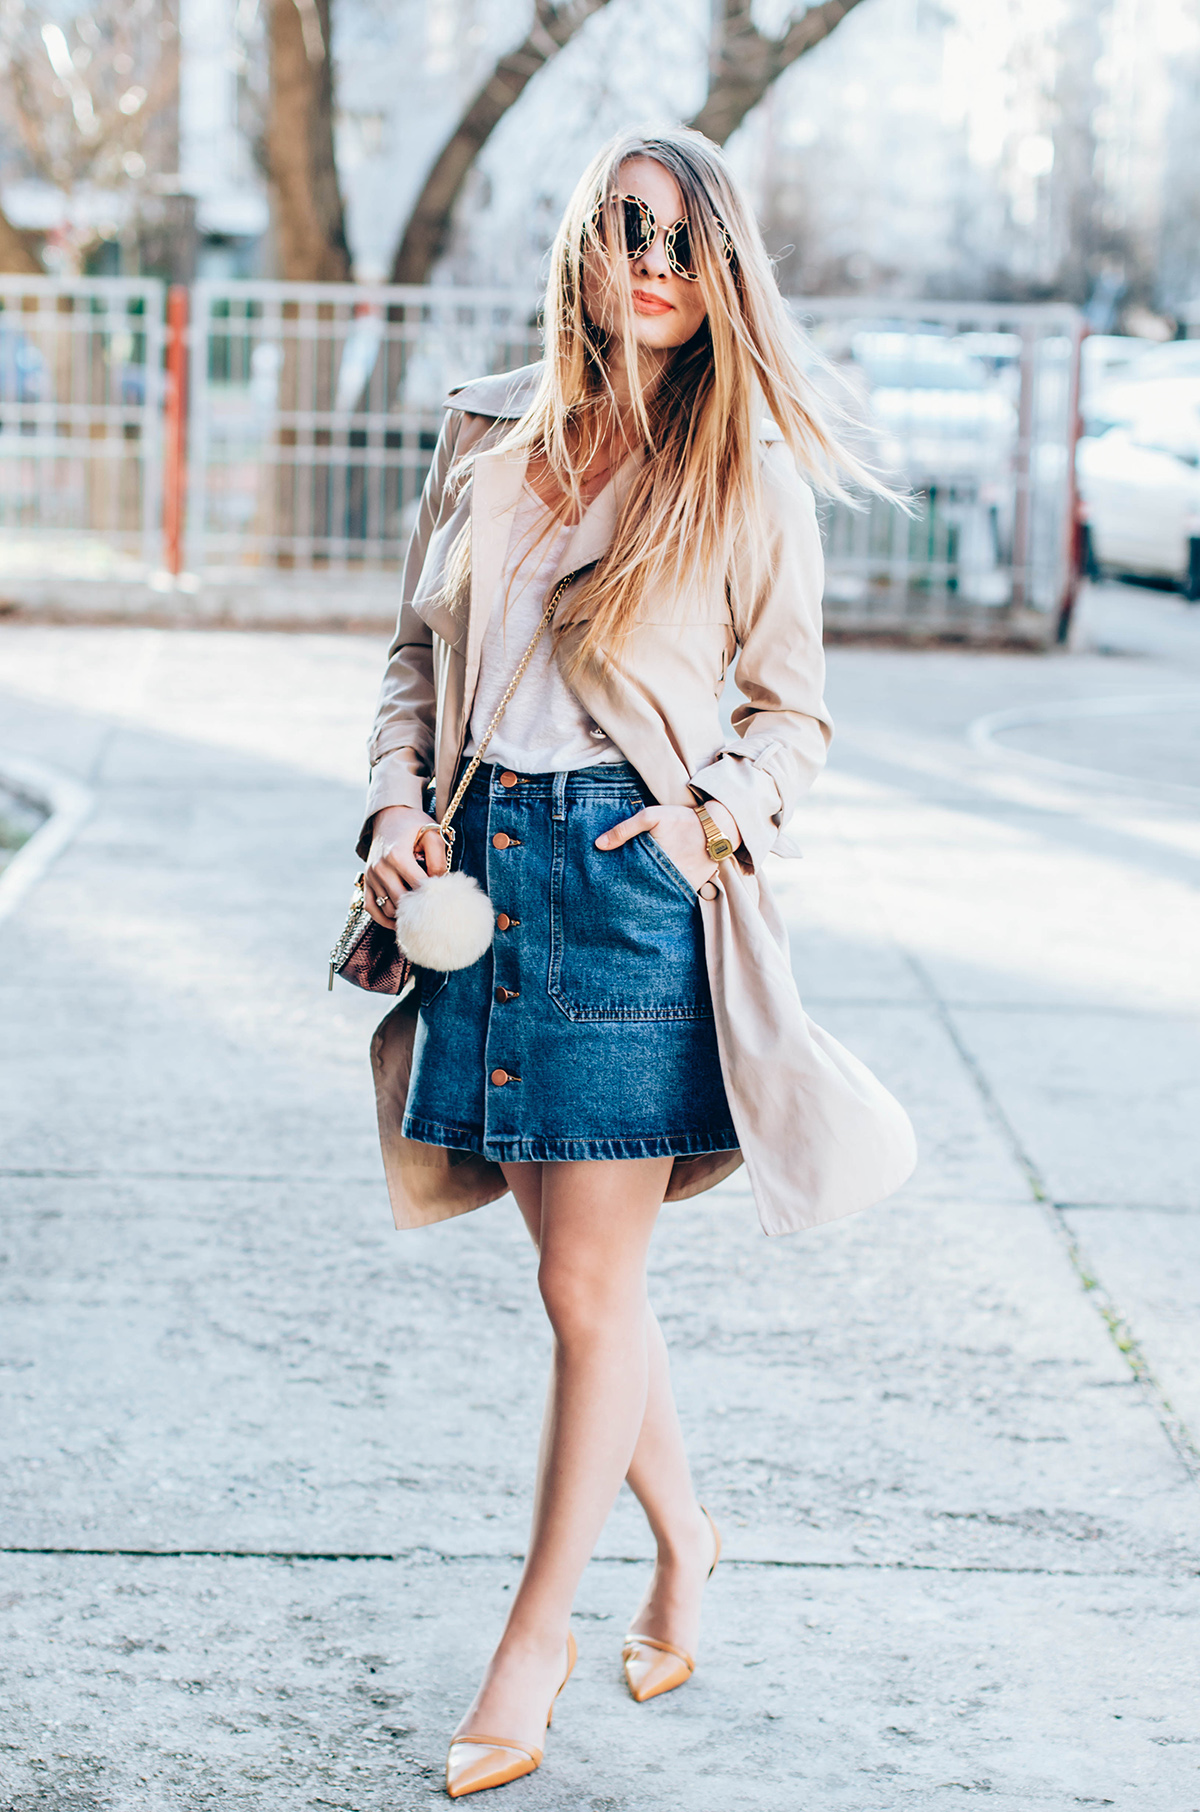 shein-buttoned-denim-skirt-trench-coat-outfit-snake-chloe-bag-fur-pom-pom-outfit (6)